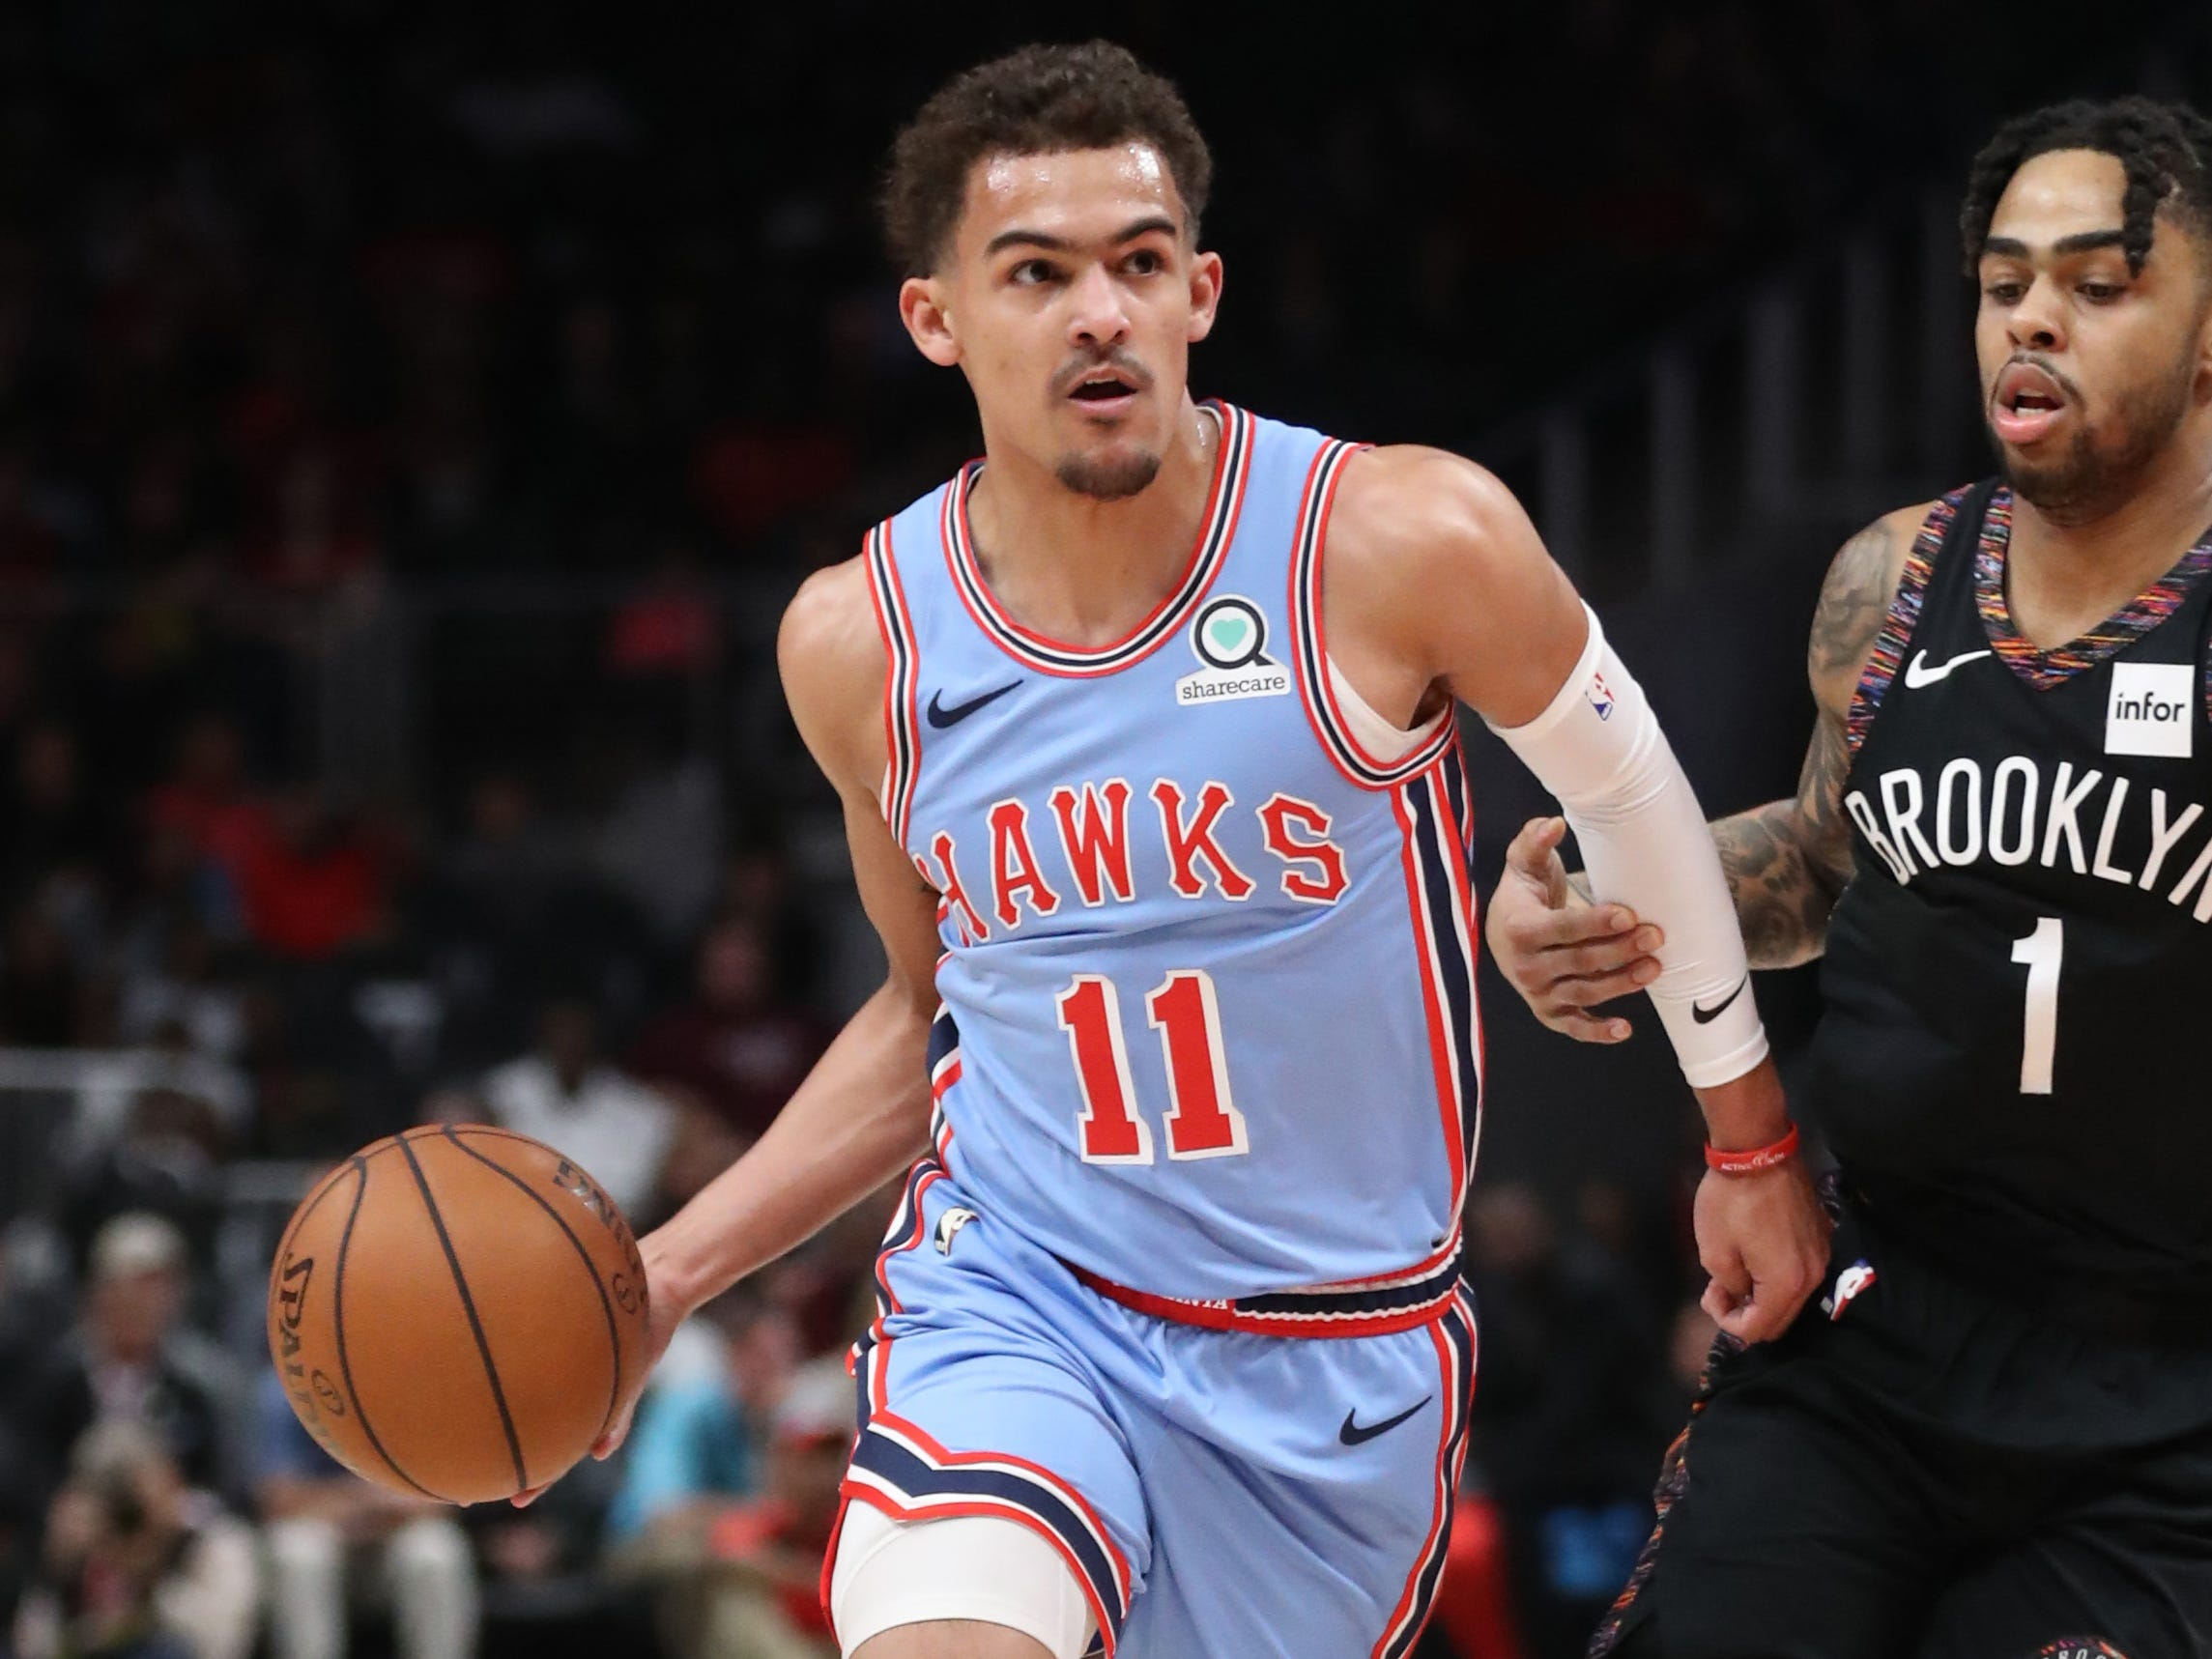 95. Trae Young, Hawks (March 9): 23 points, 11 assists, 10 rebounds in 114-112 loss to Nets.